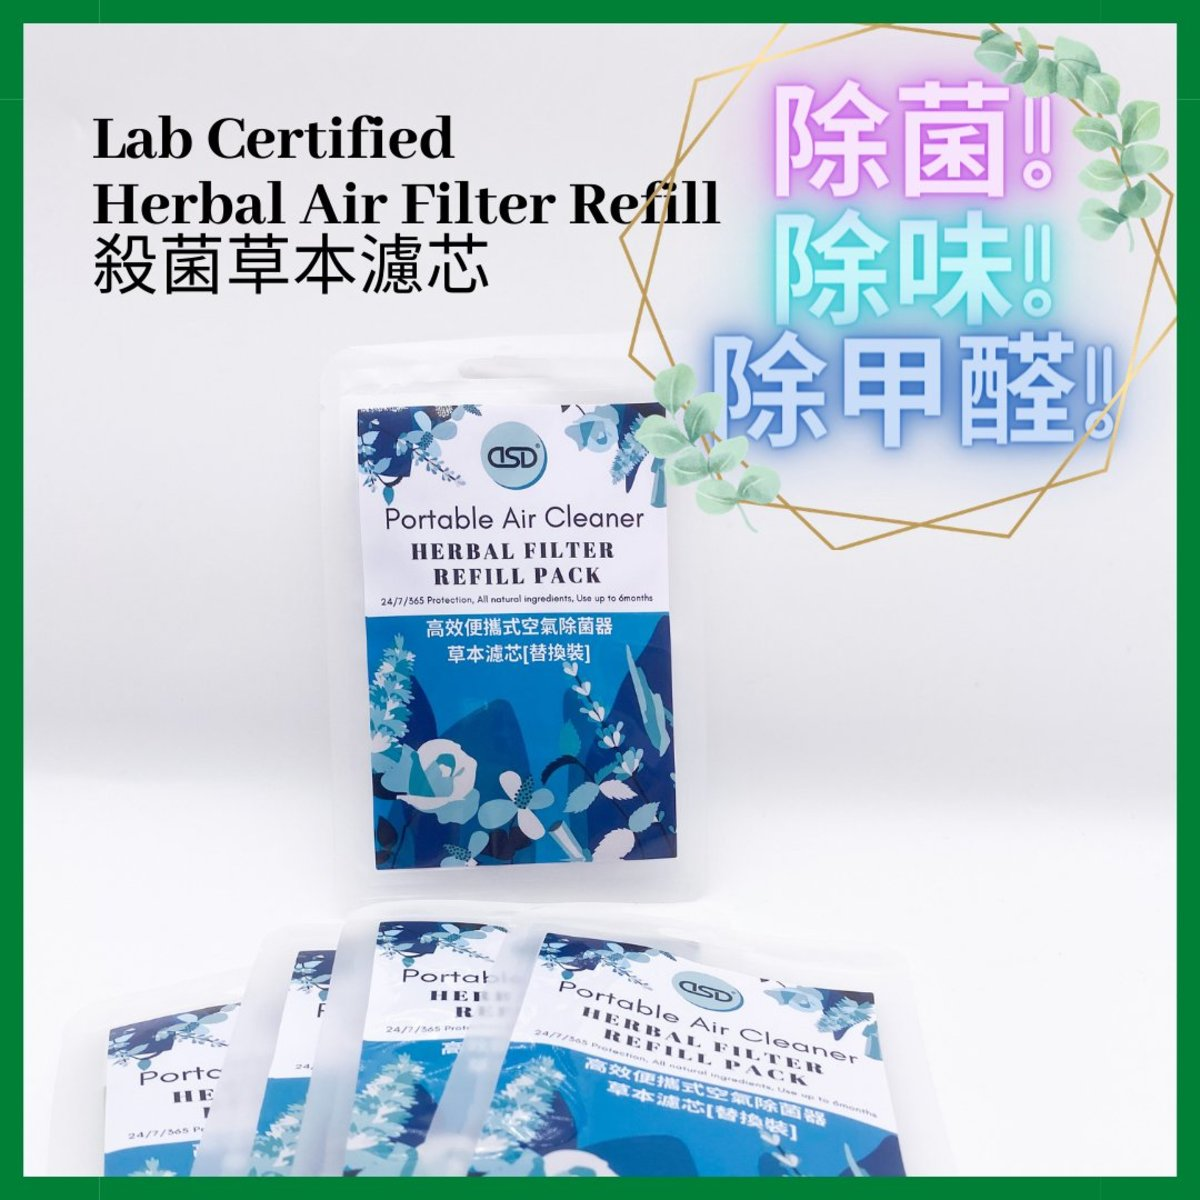 Herbal Filter - for portable air cleaner - Refill Pack